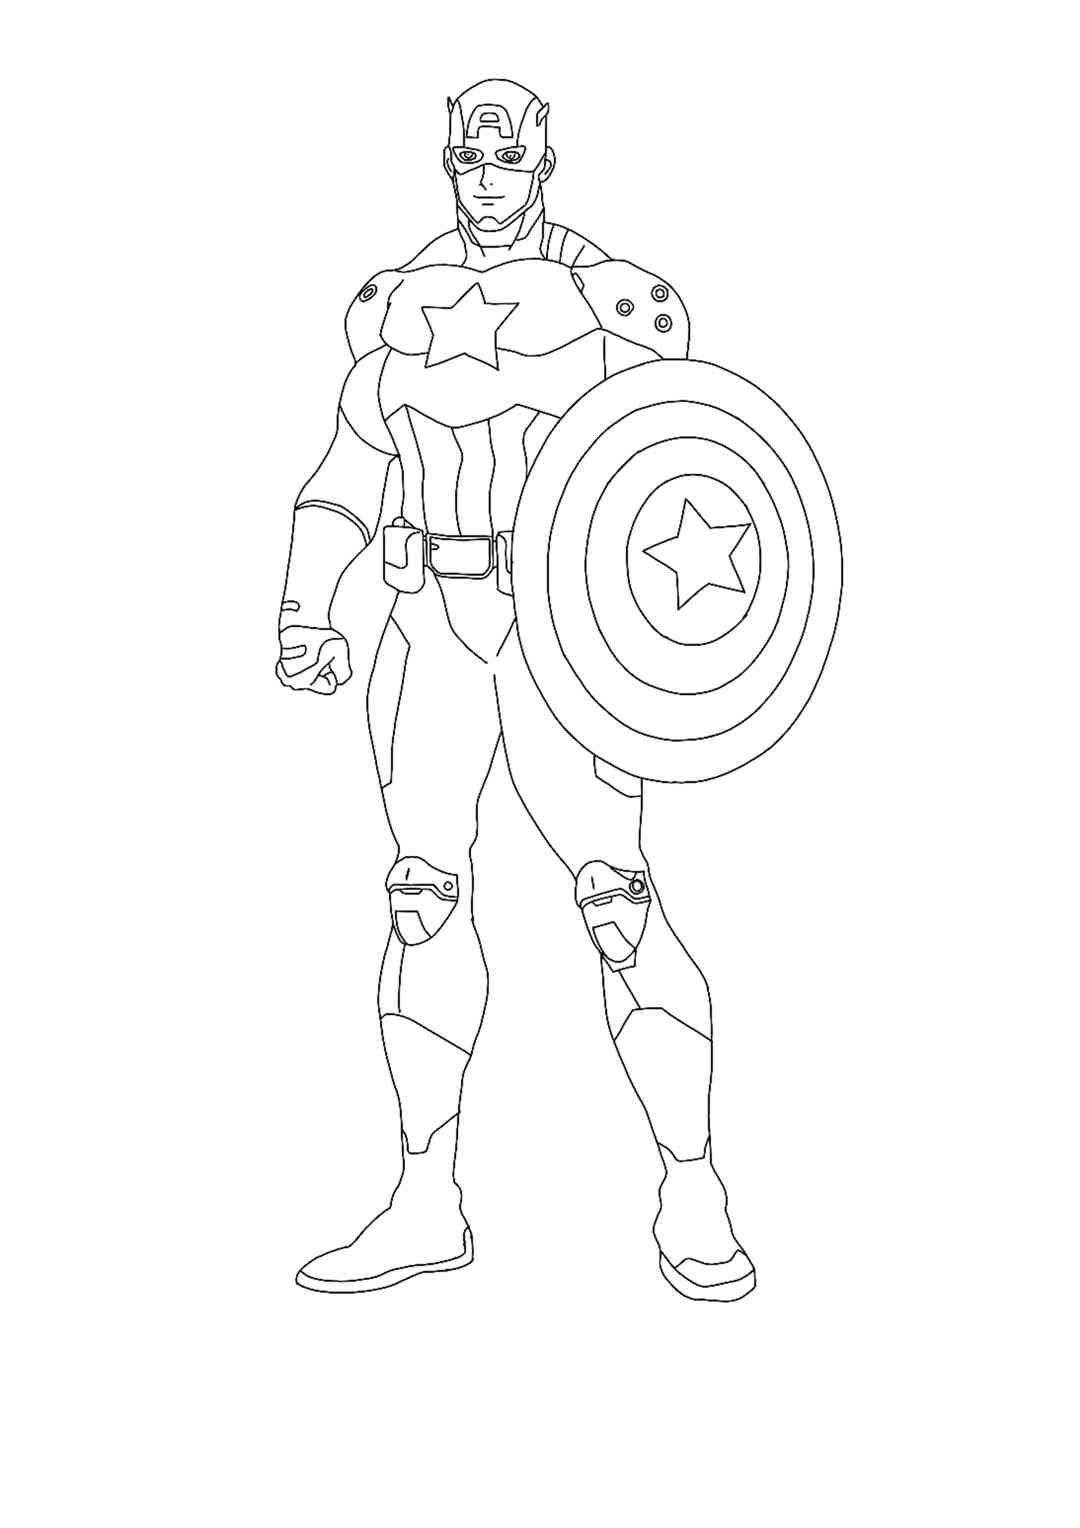 Captain America Civil War Coloring Pages In 2020 Captain America Coloring Pages Captain America Coloring Pages